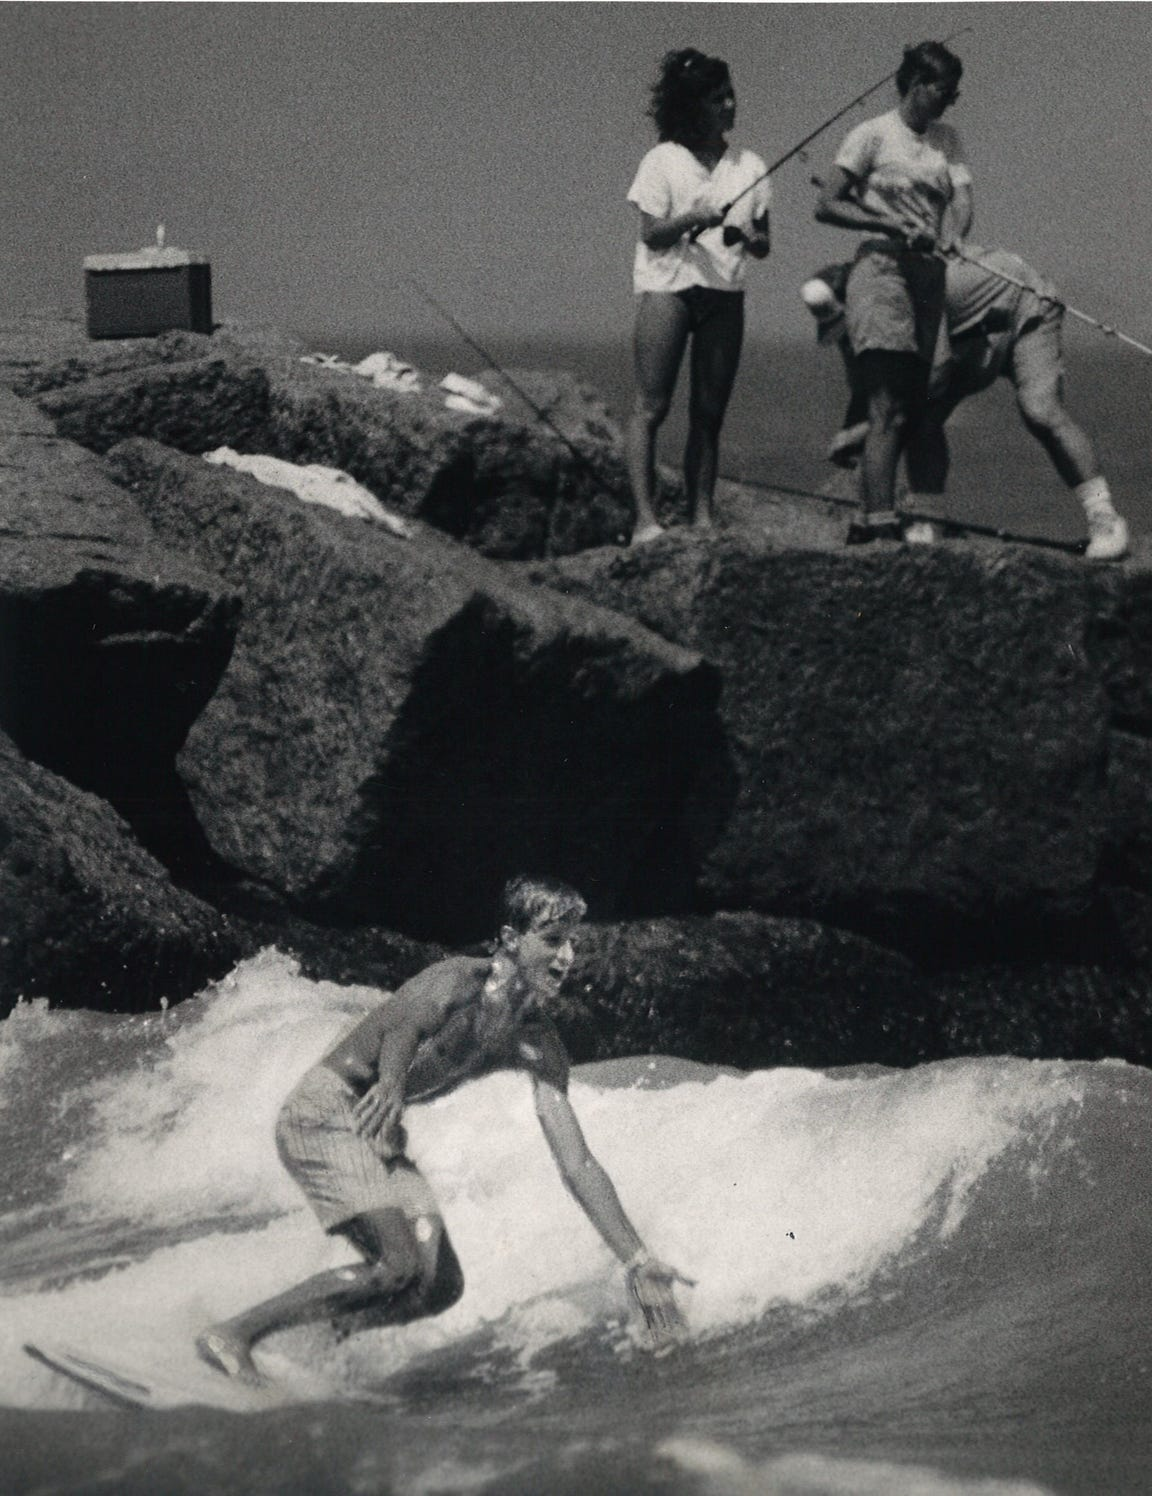 An unidentified surfer catches a wave next to the Fish Pash jetties in Mustang Island State Park in Corpus Christi in July 1987 as fishermen try their luck in the background.